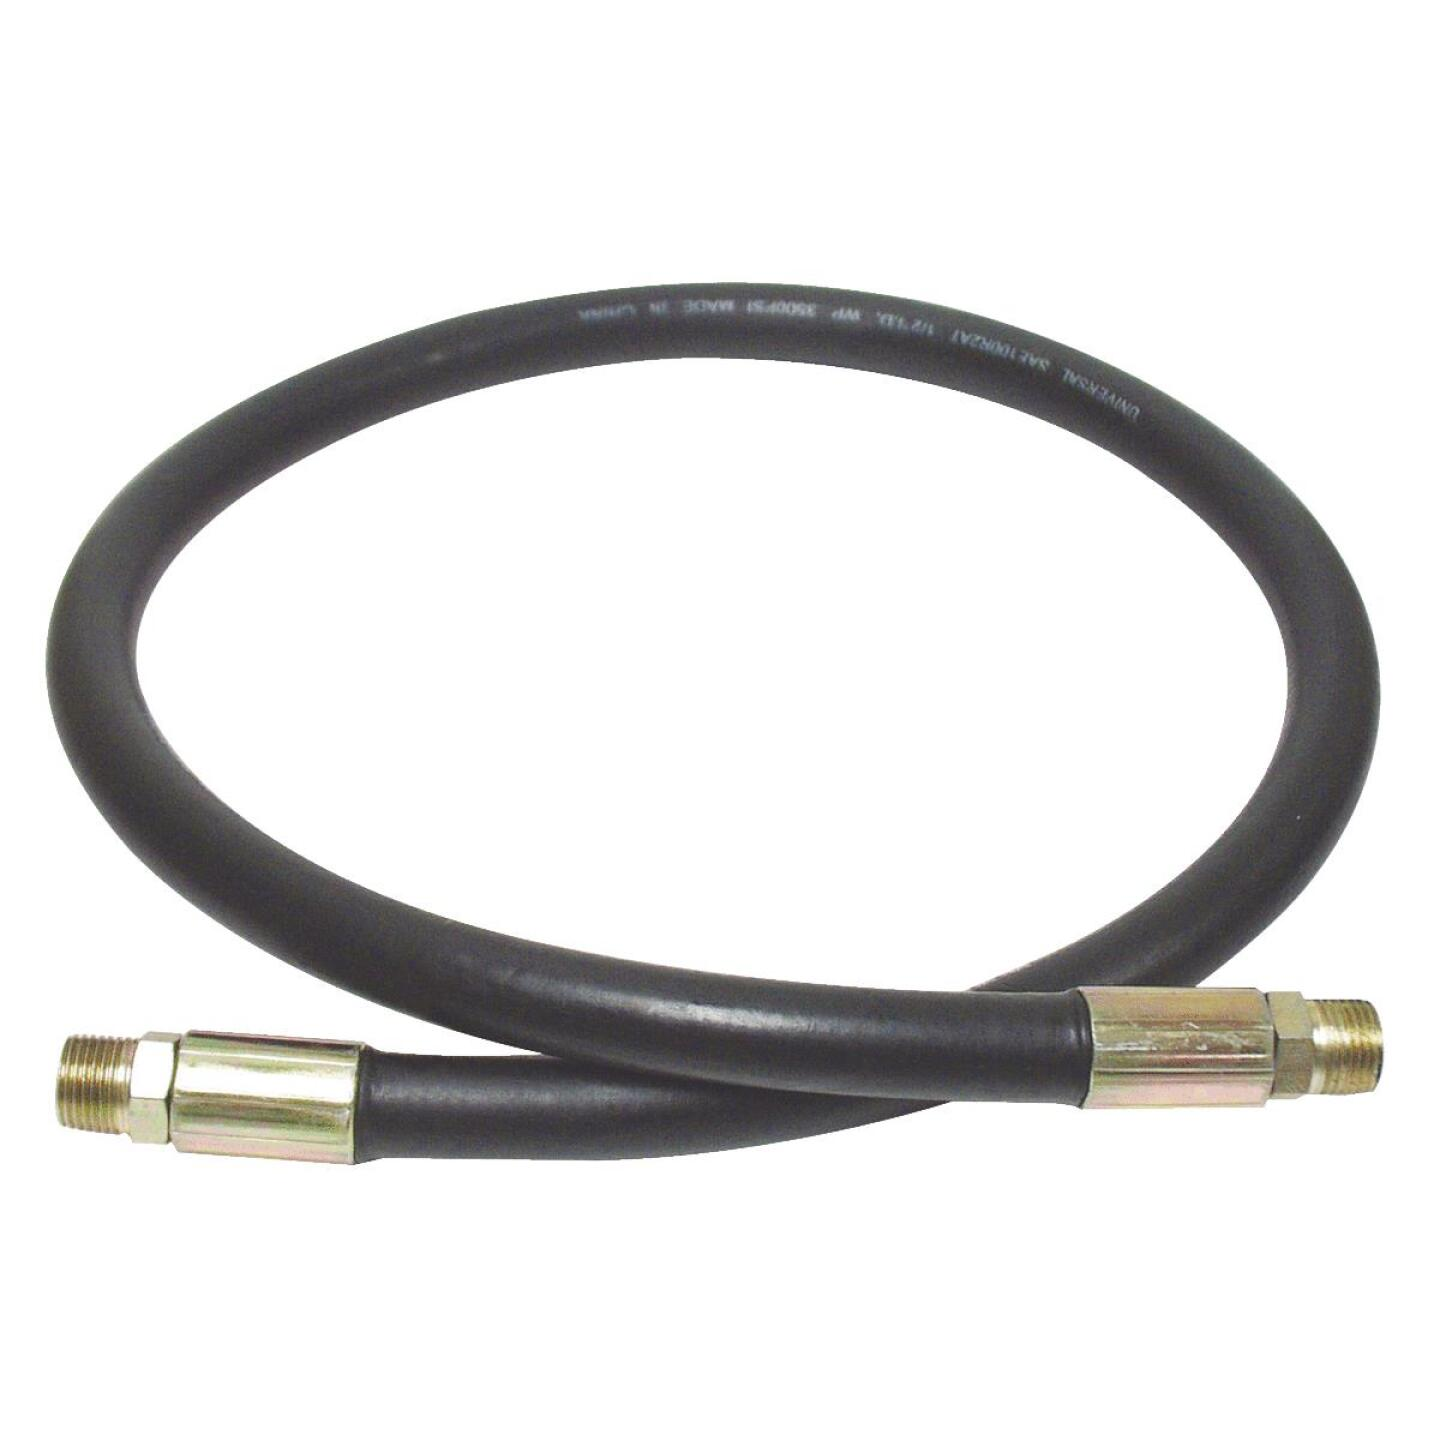 Apache 3/8 In. x 24 In. Male to Male Hydraulic Hose Image 1